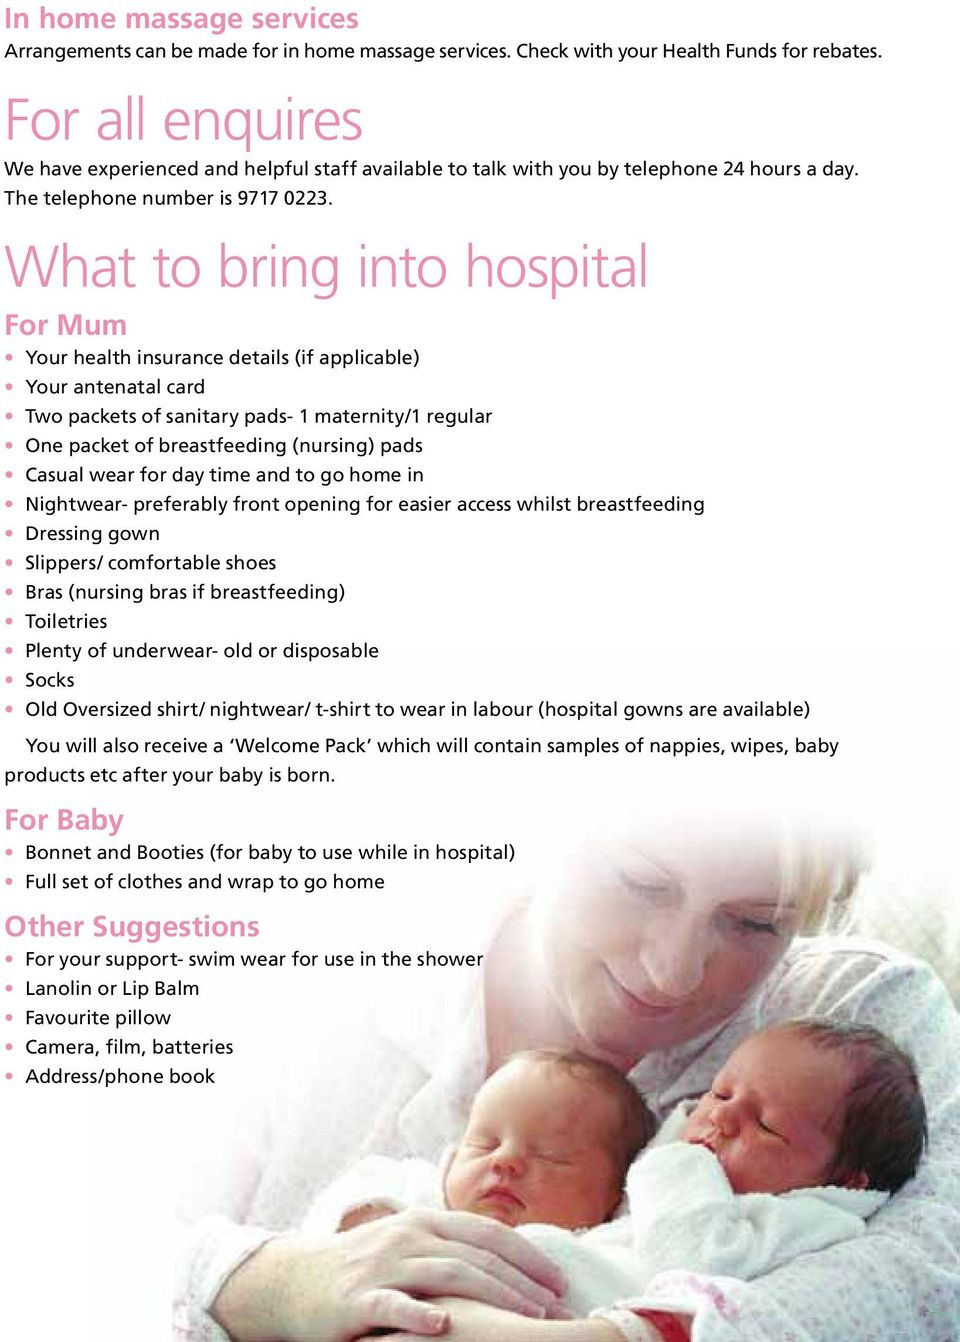 What to bring into hospital For Mum Your health insurance details (if applicable) Your antenatal card Two packets of sanitary pads- 1 maternity/1 regular One packet of breastfeeding (nursing) pads